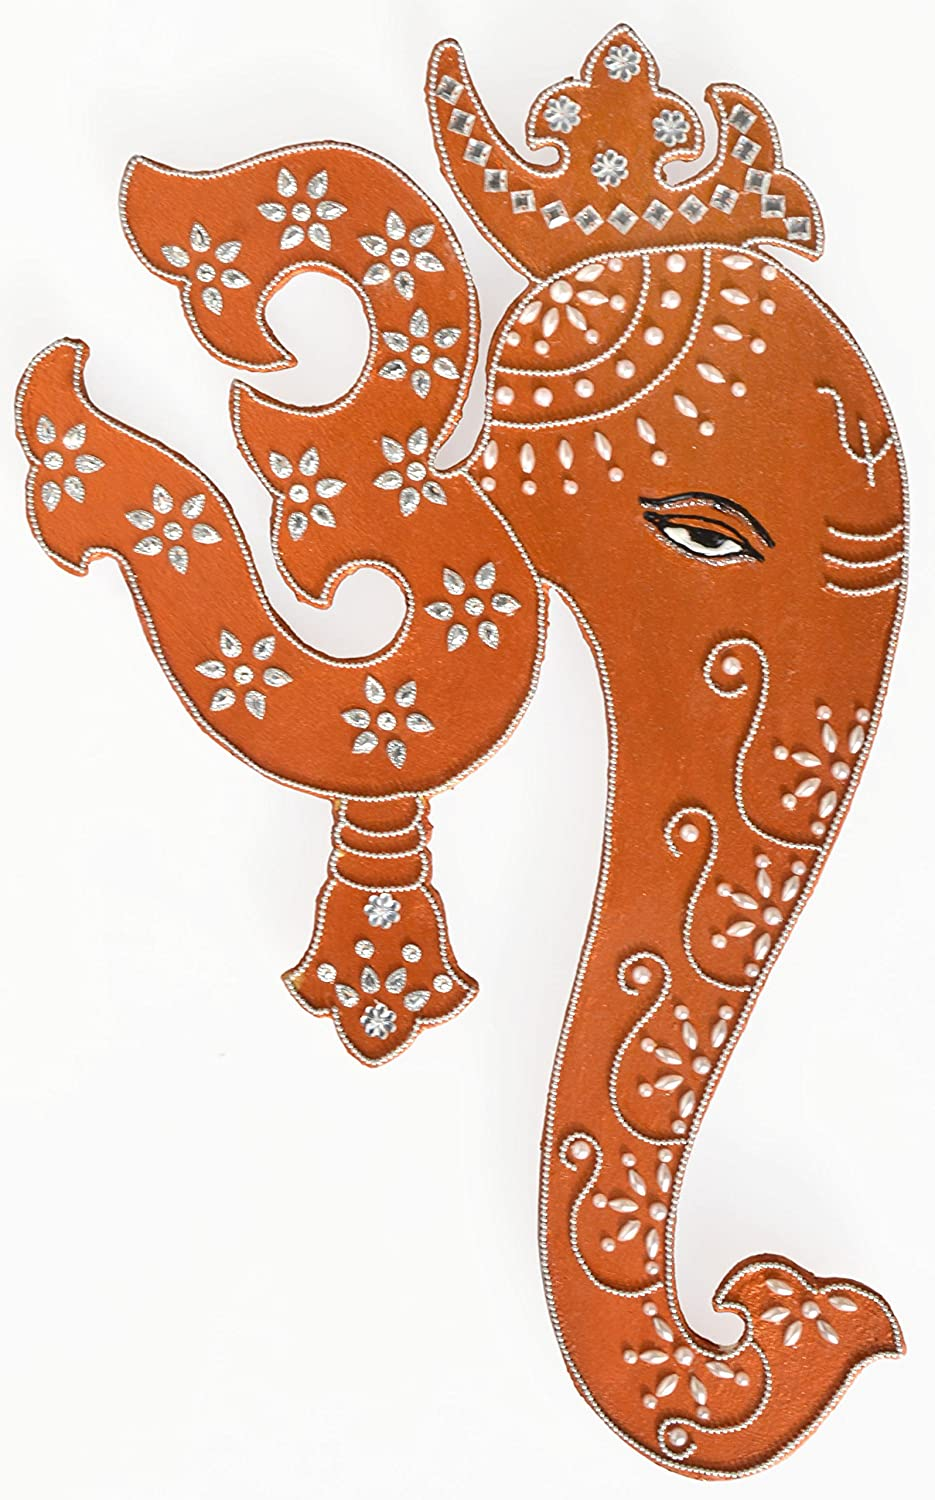 Ethnic Avenue Indian Art Wall Decor Hanging Painting of Lord Ganesha & Spiritual Om - Authentic Handmade Hindu Art of Prosperity - in Copper Shade